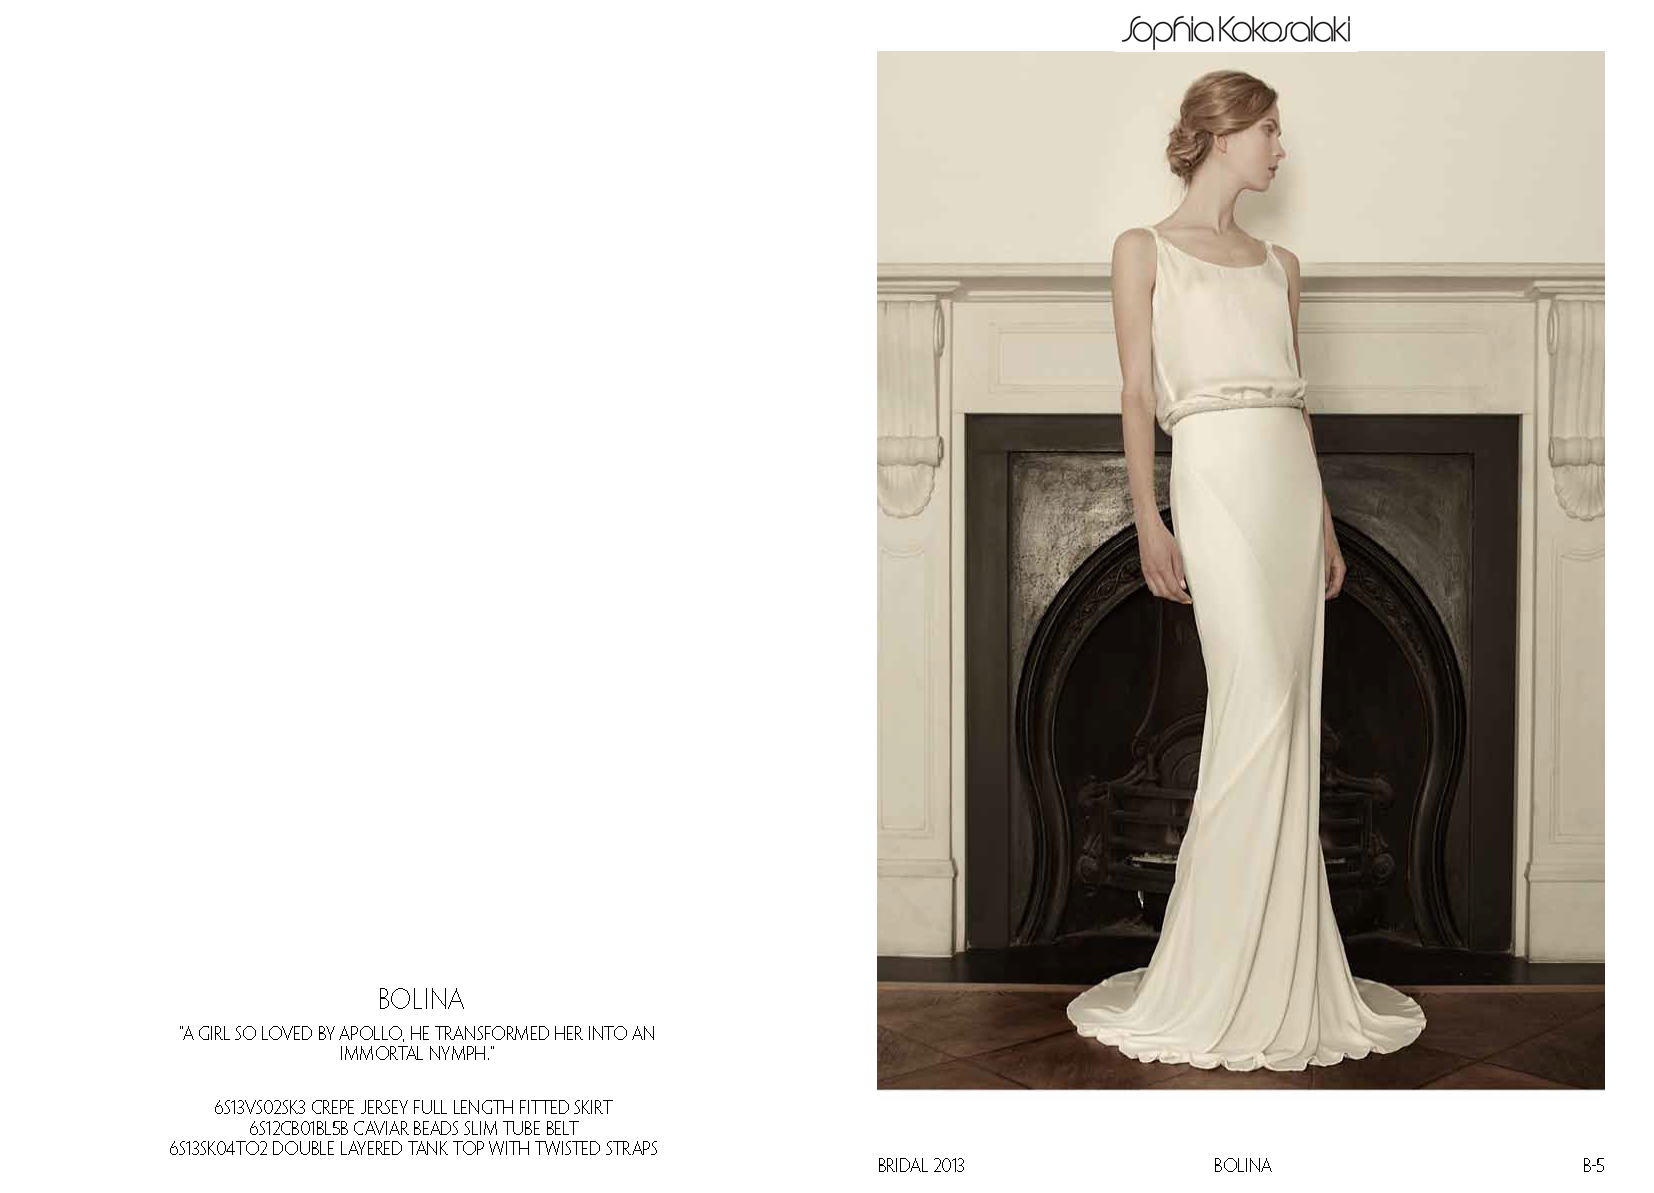 12.07.11 - 13SS Look Book Bridal & Luxury Collection Sophia Kokosalaki l..._Page_06.png